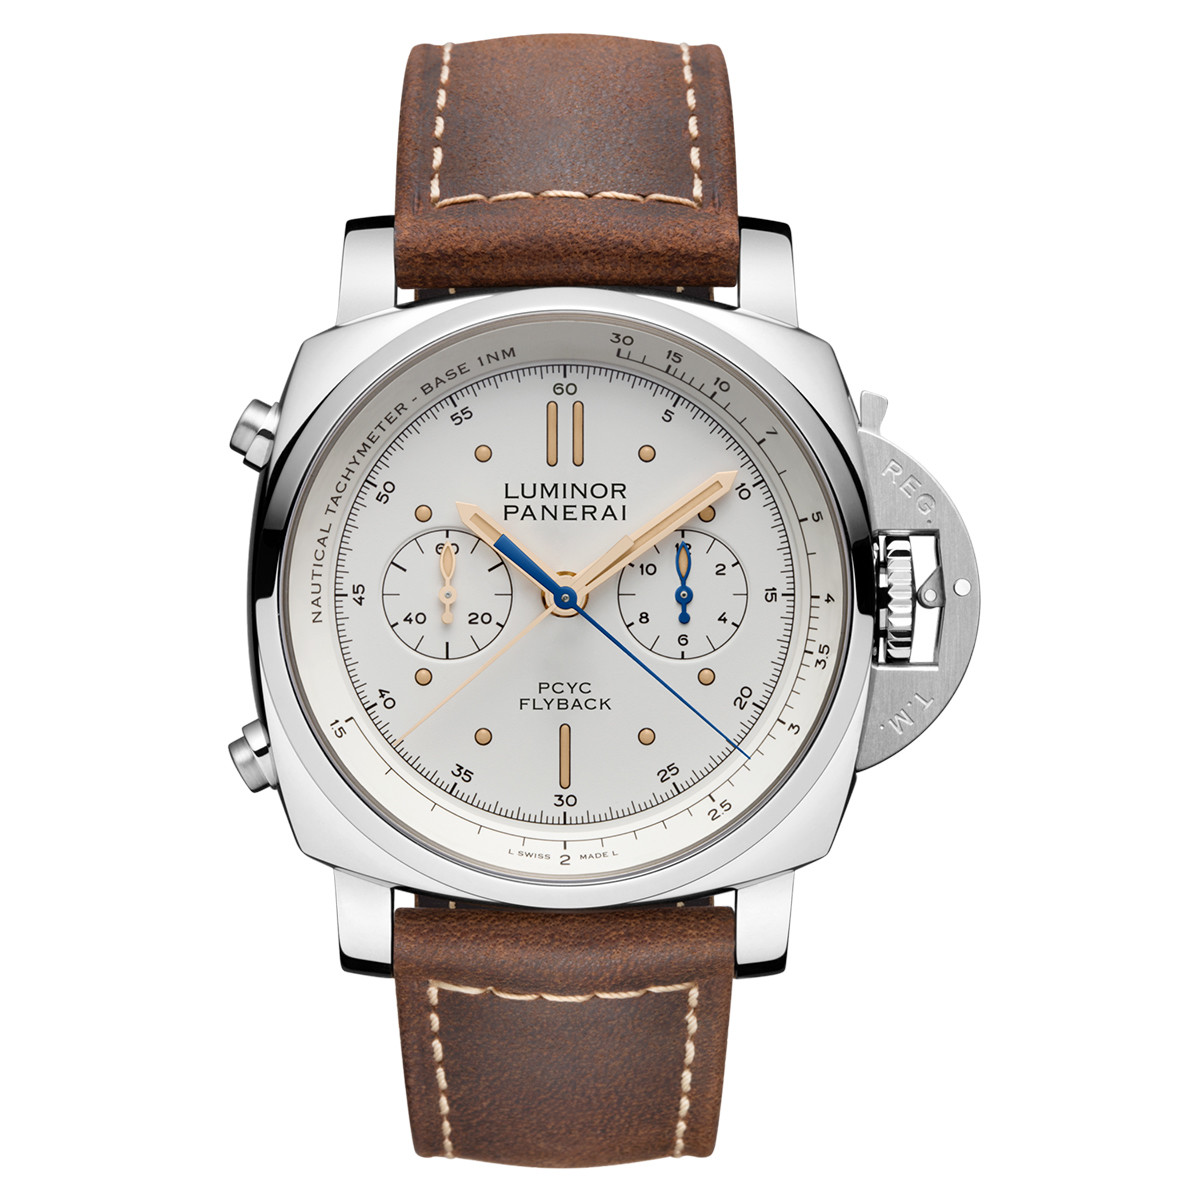 Luminor 1950 PCYC Chrono Flyback (PAM00654)